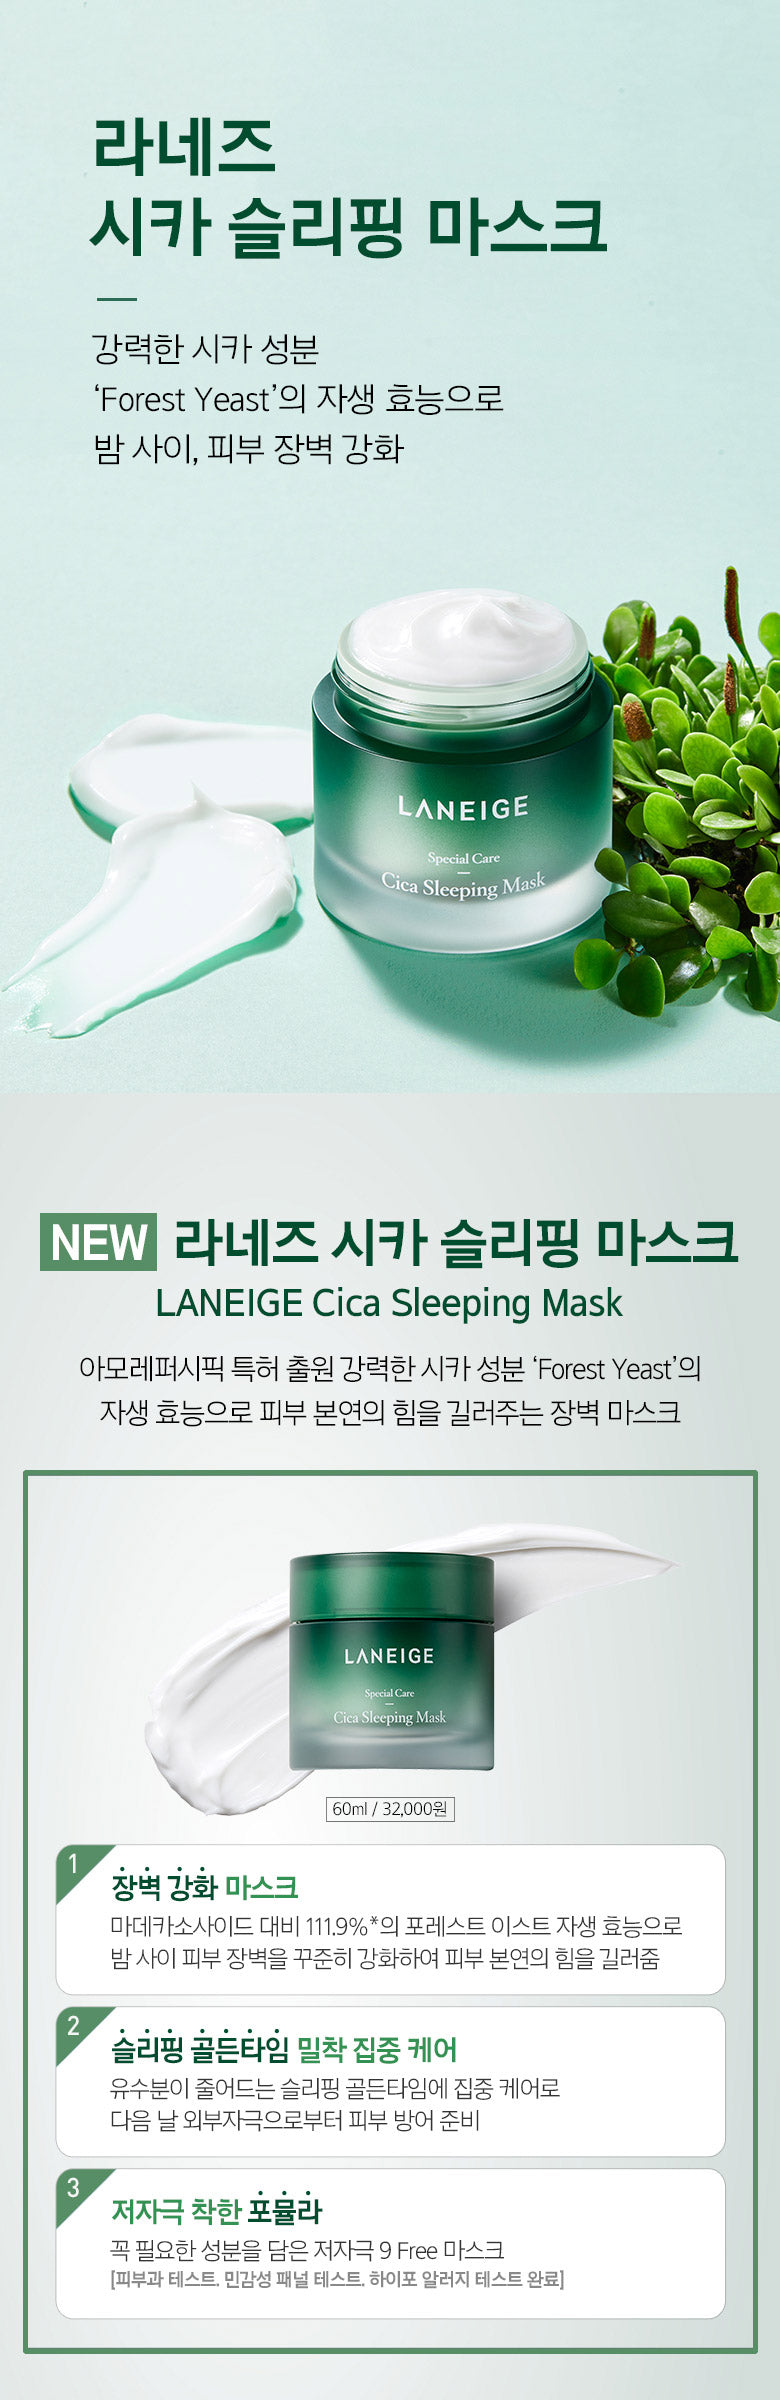 Laneige Mini Cica Sleeping Mask